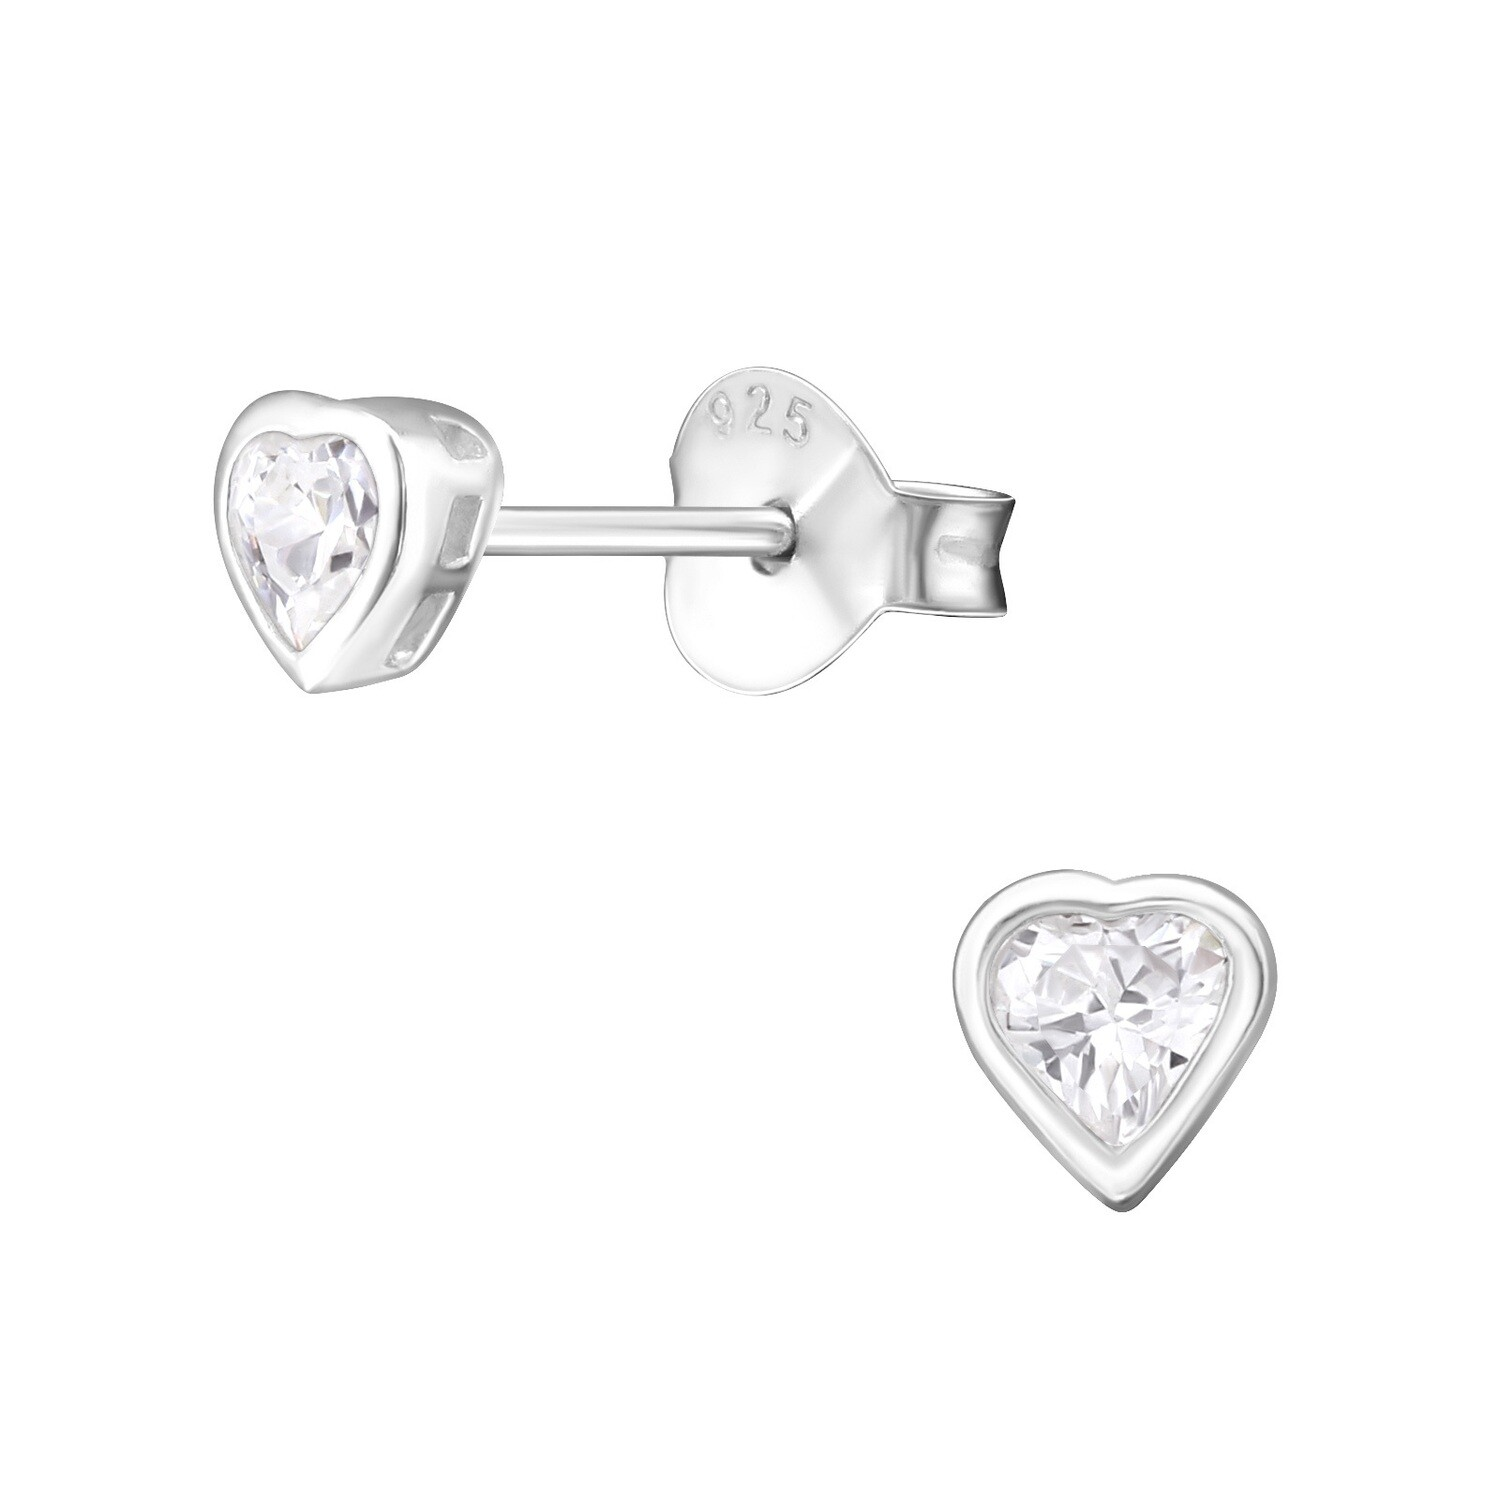 P36-23 Sterling Silver Small Bezel CZ Heart Posts